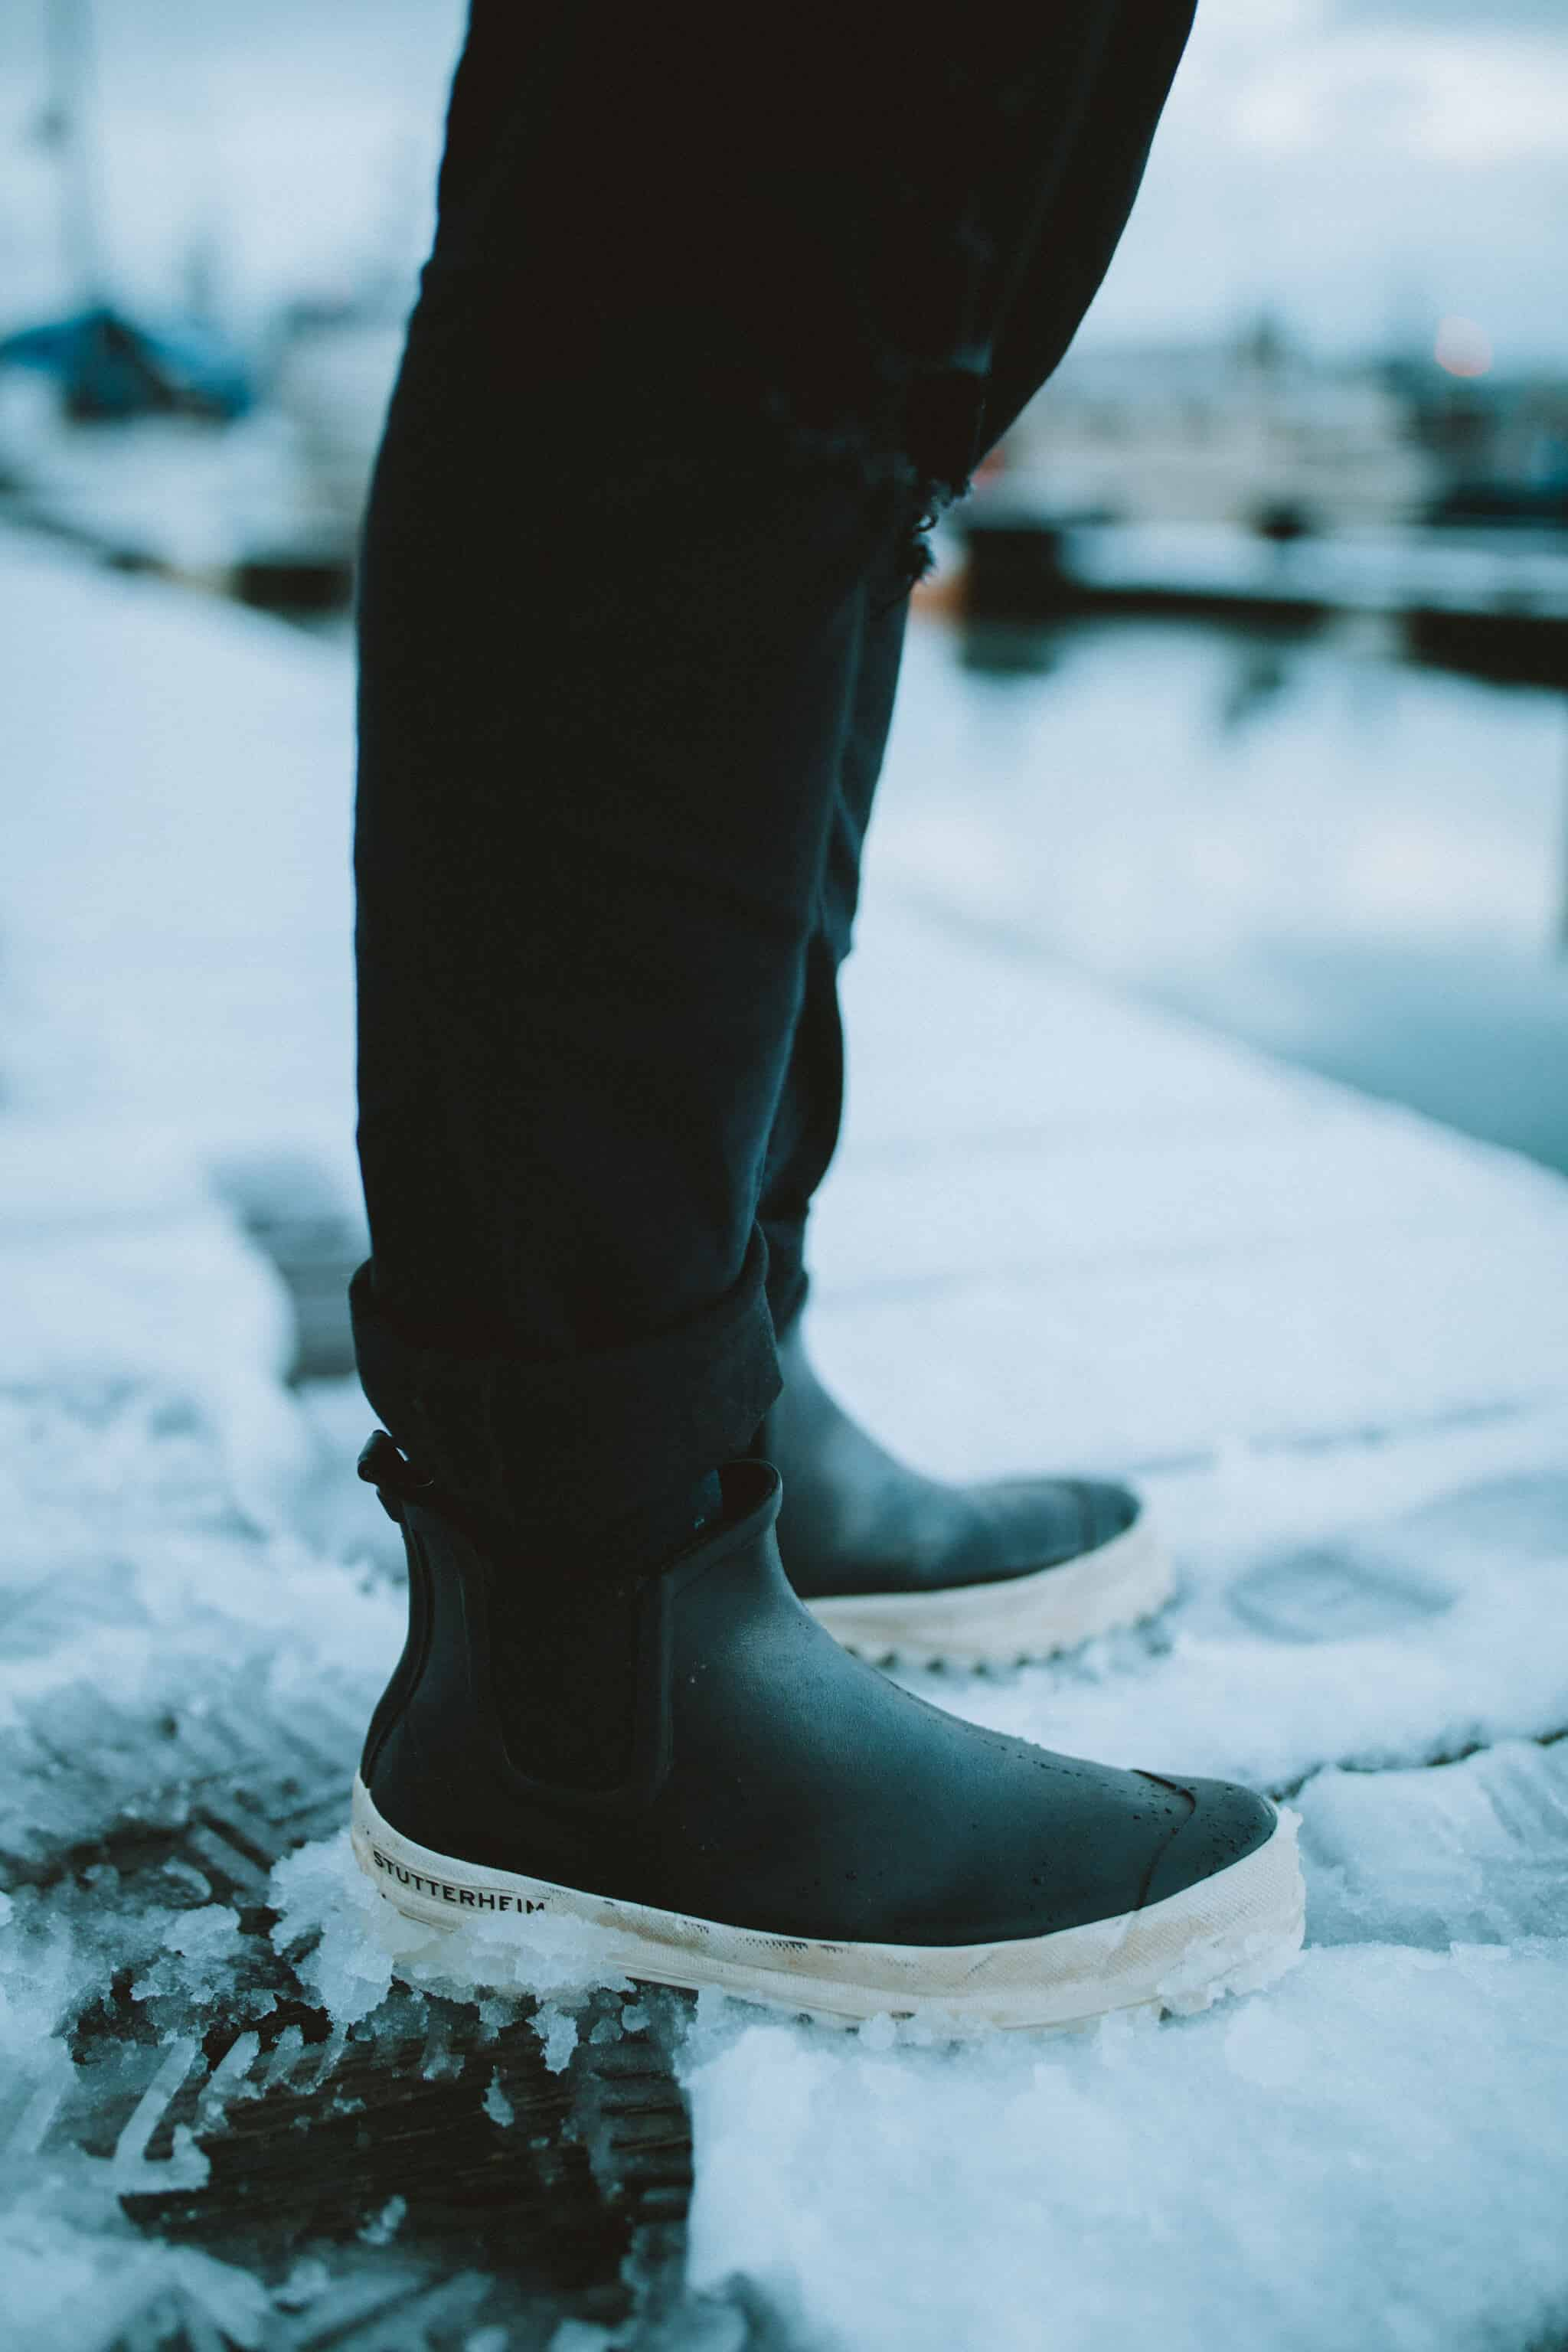 Stutterheim Rain Boots - What To Wear Alaska Road Trip - TheMandagies.com